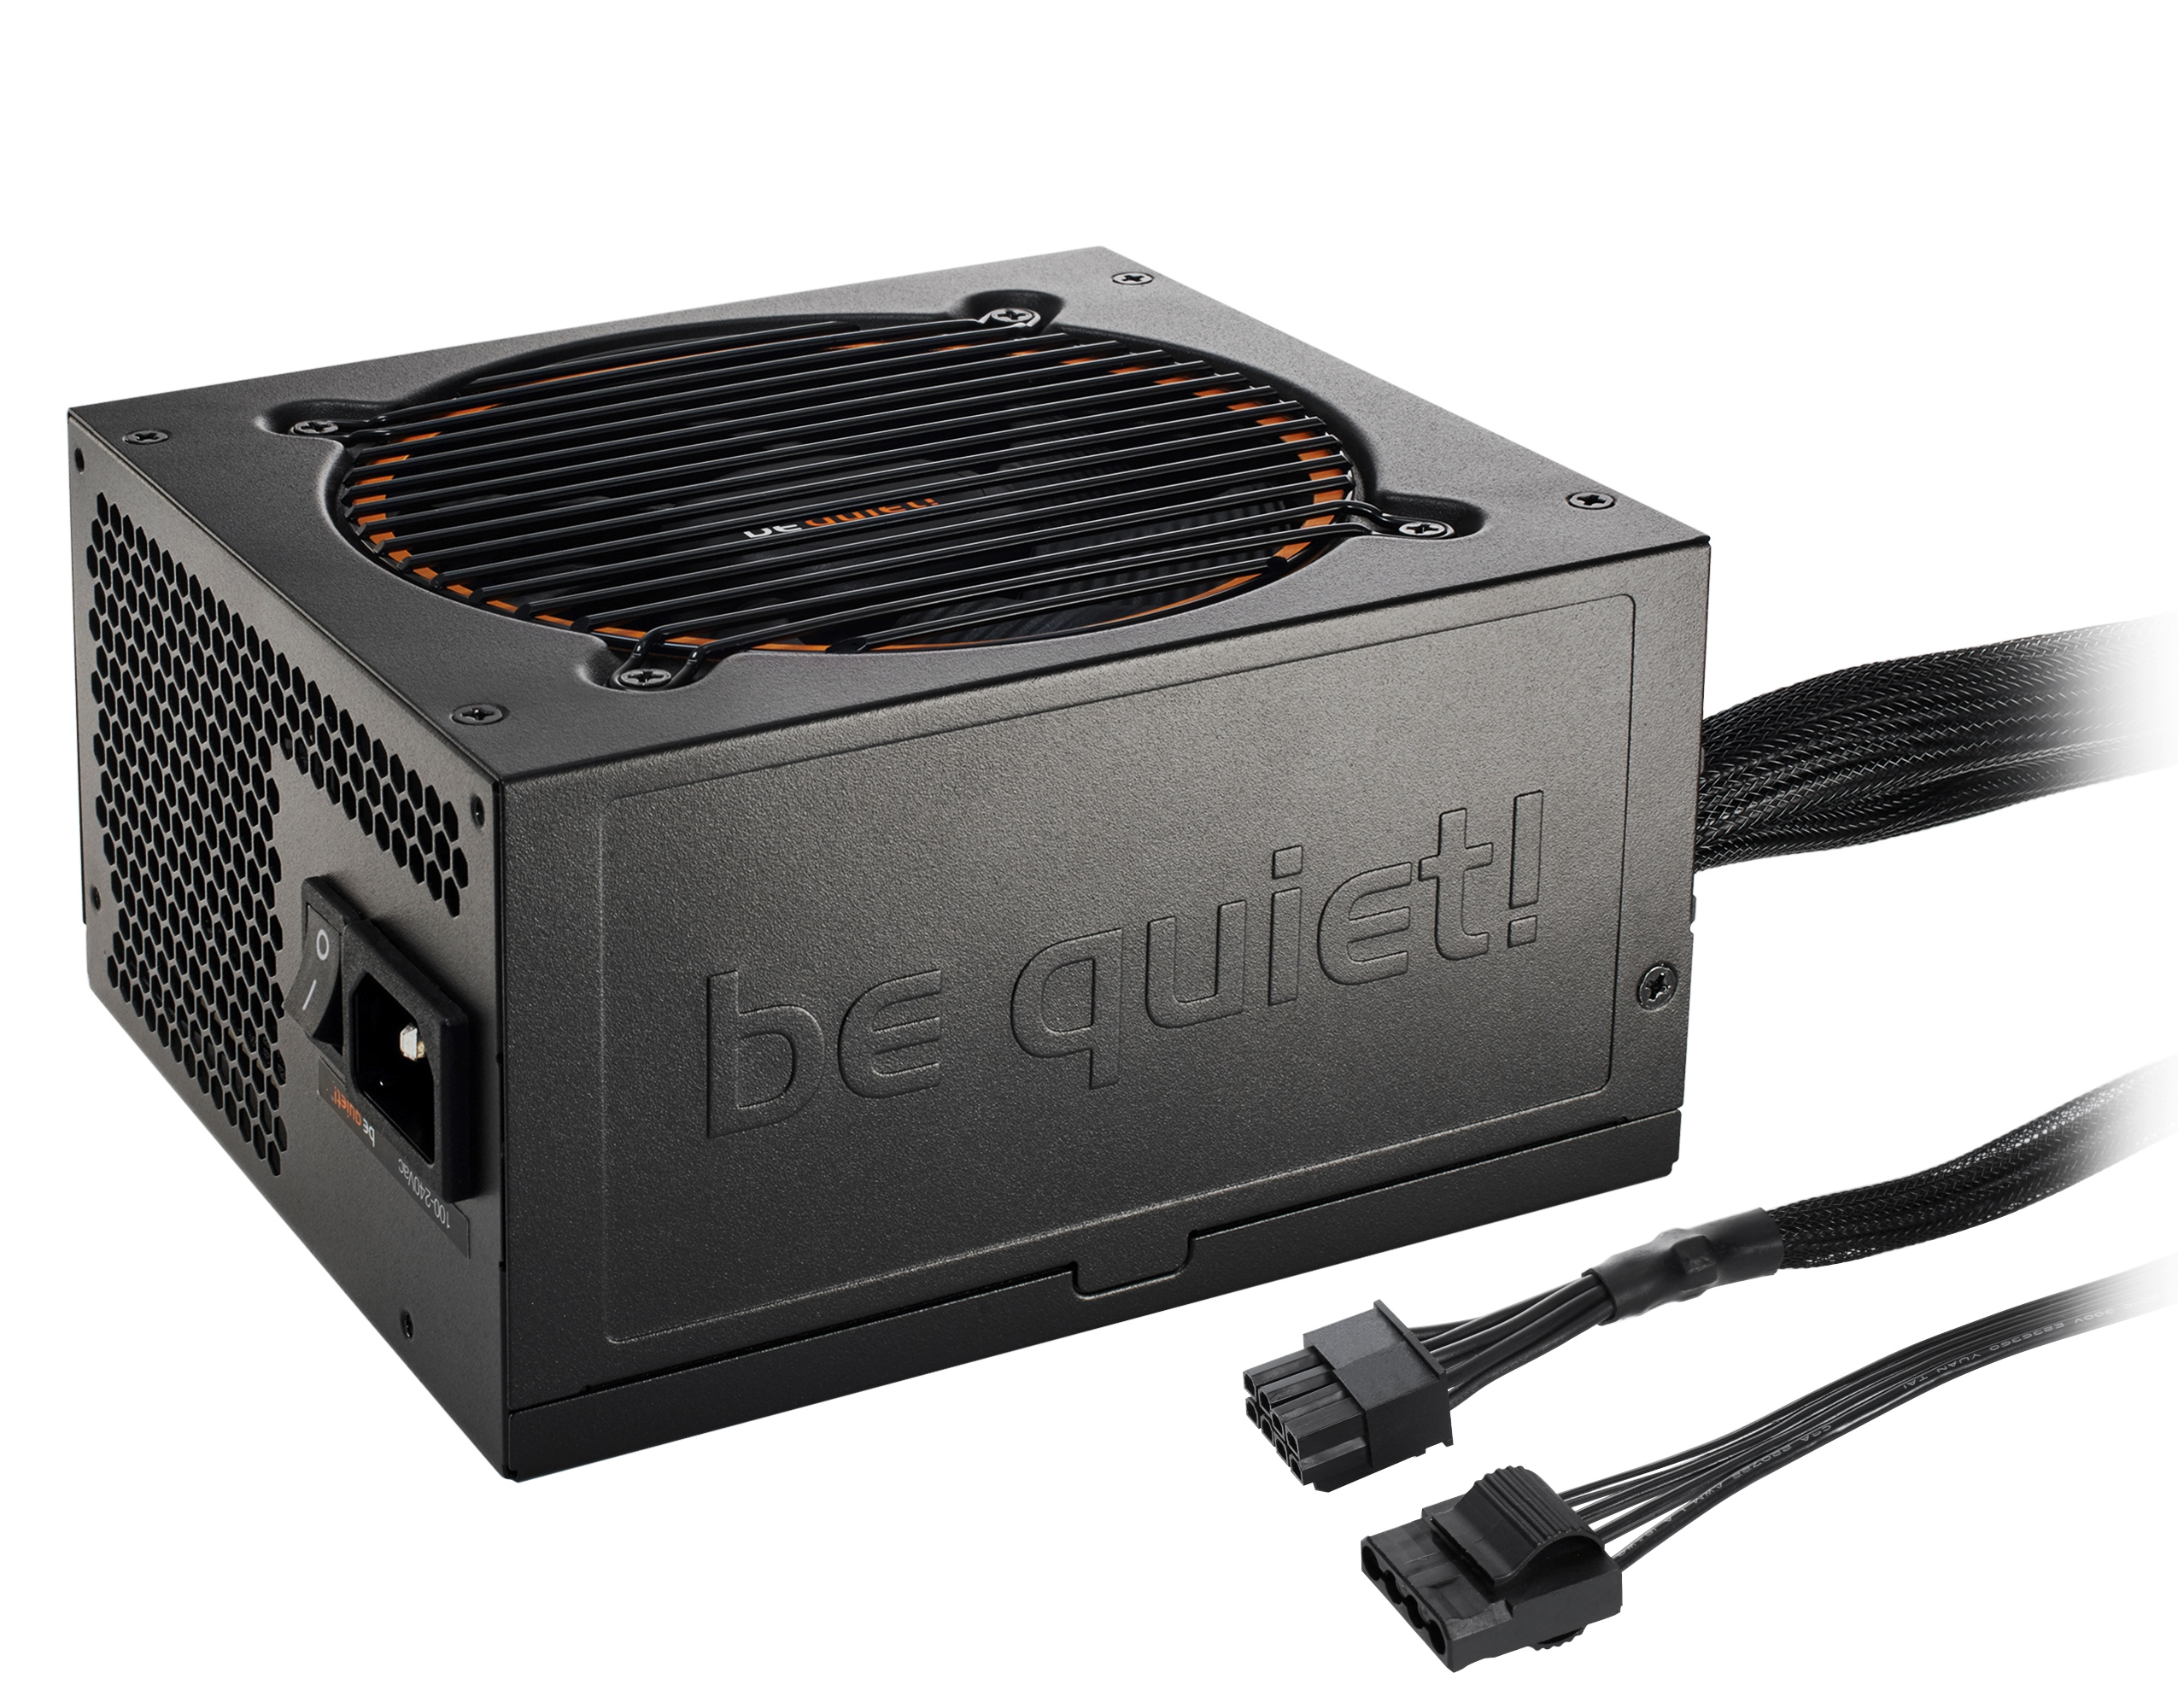 be quiet! Pure Power 11 700W CM, Cable Management, 80+ Gold, ErP, Energy Star 6.0 APFC, Sleeved, 4xPCI-Ex, 6xSATA, 3xPATA, 2 Rails, 120 mm Fan